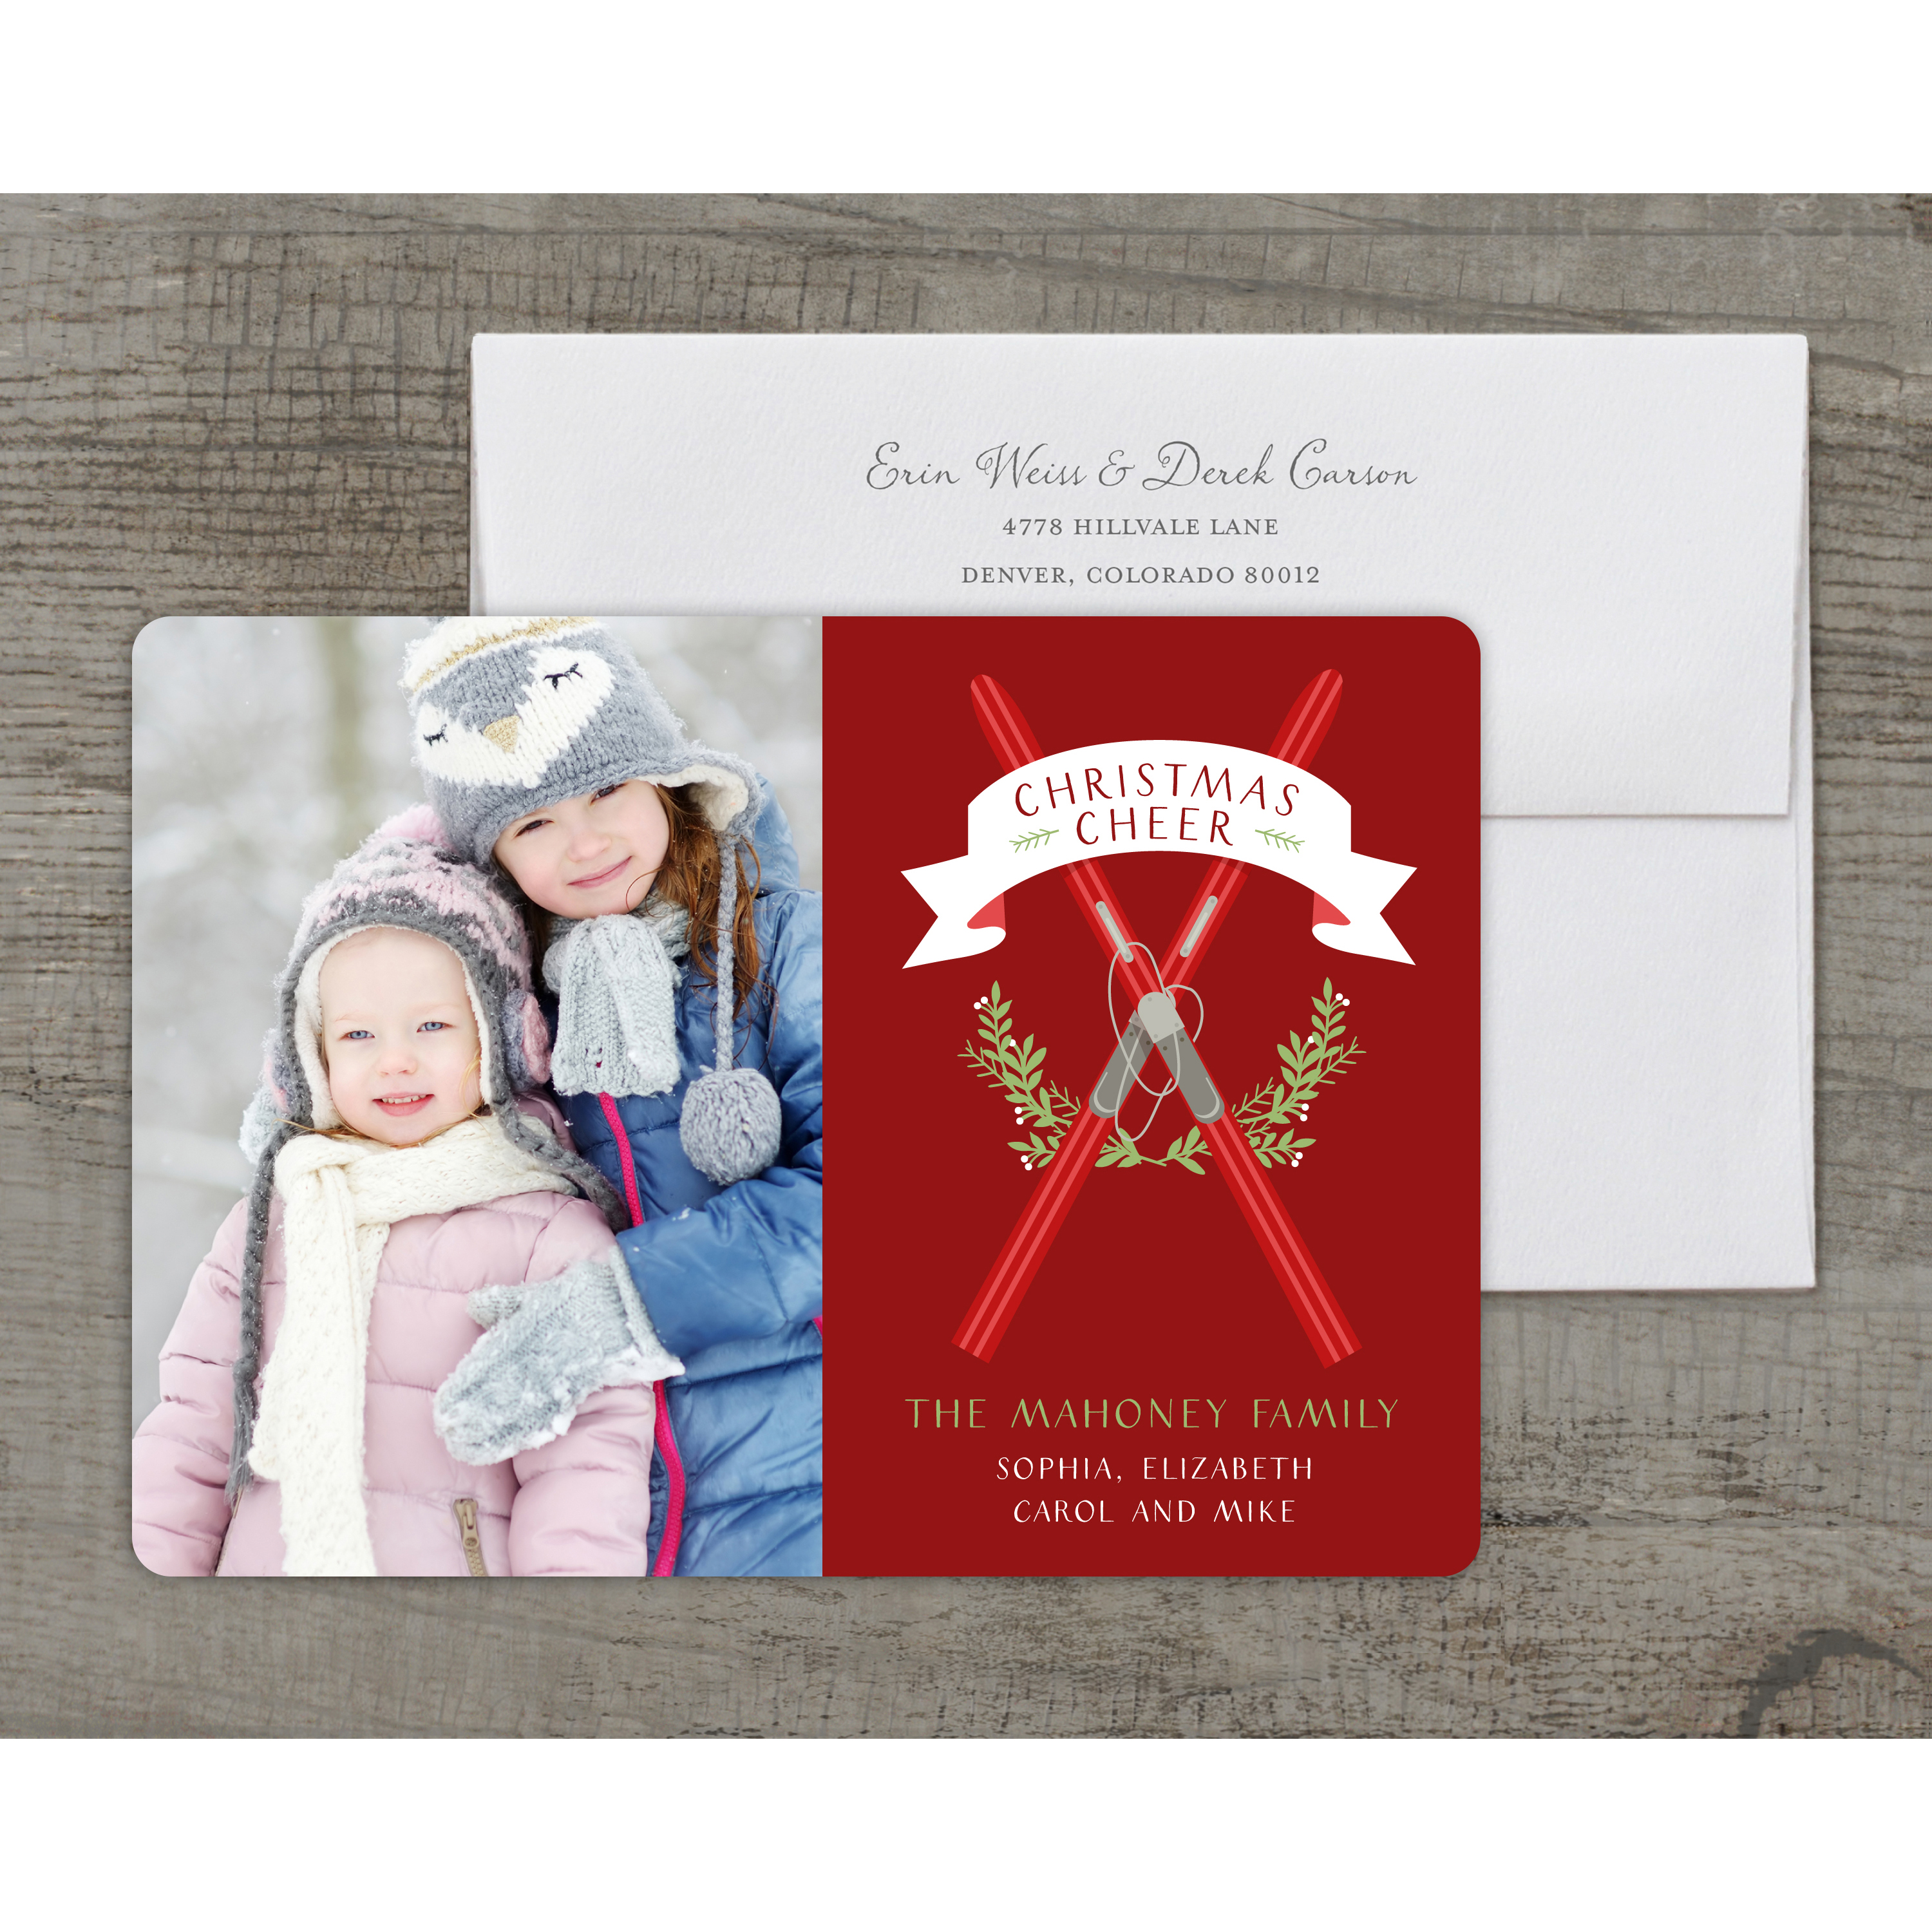 Ski House - Deluxe 5x7 Personalized Holiday Christmas Card